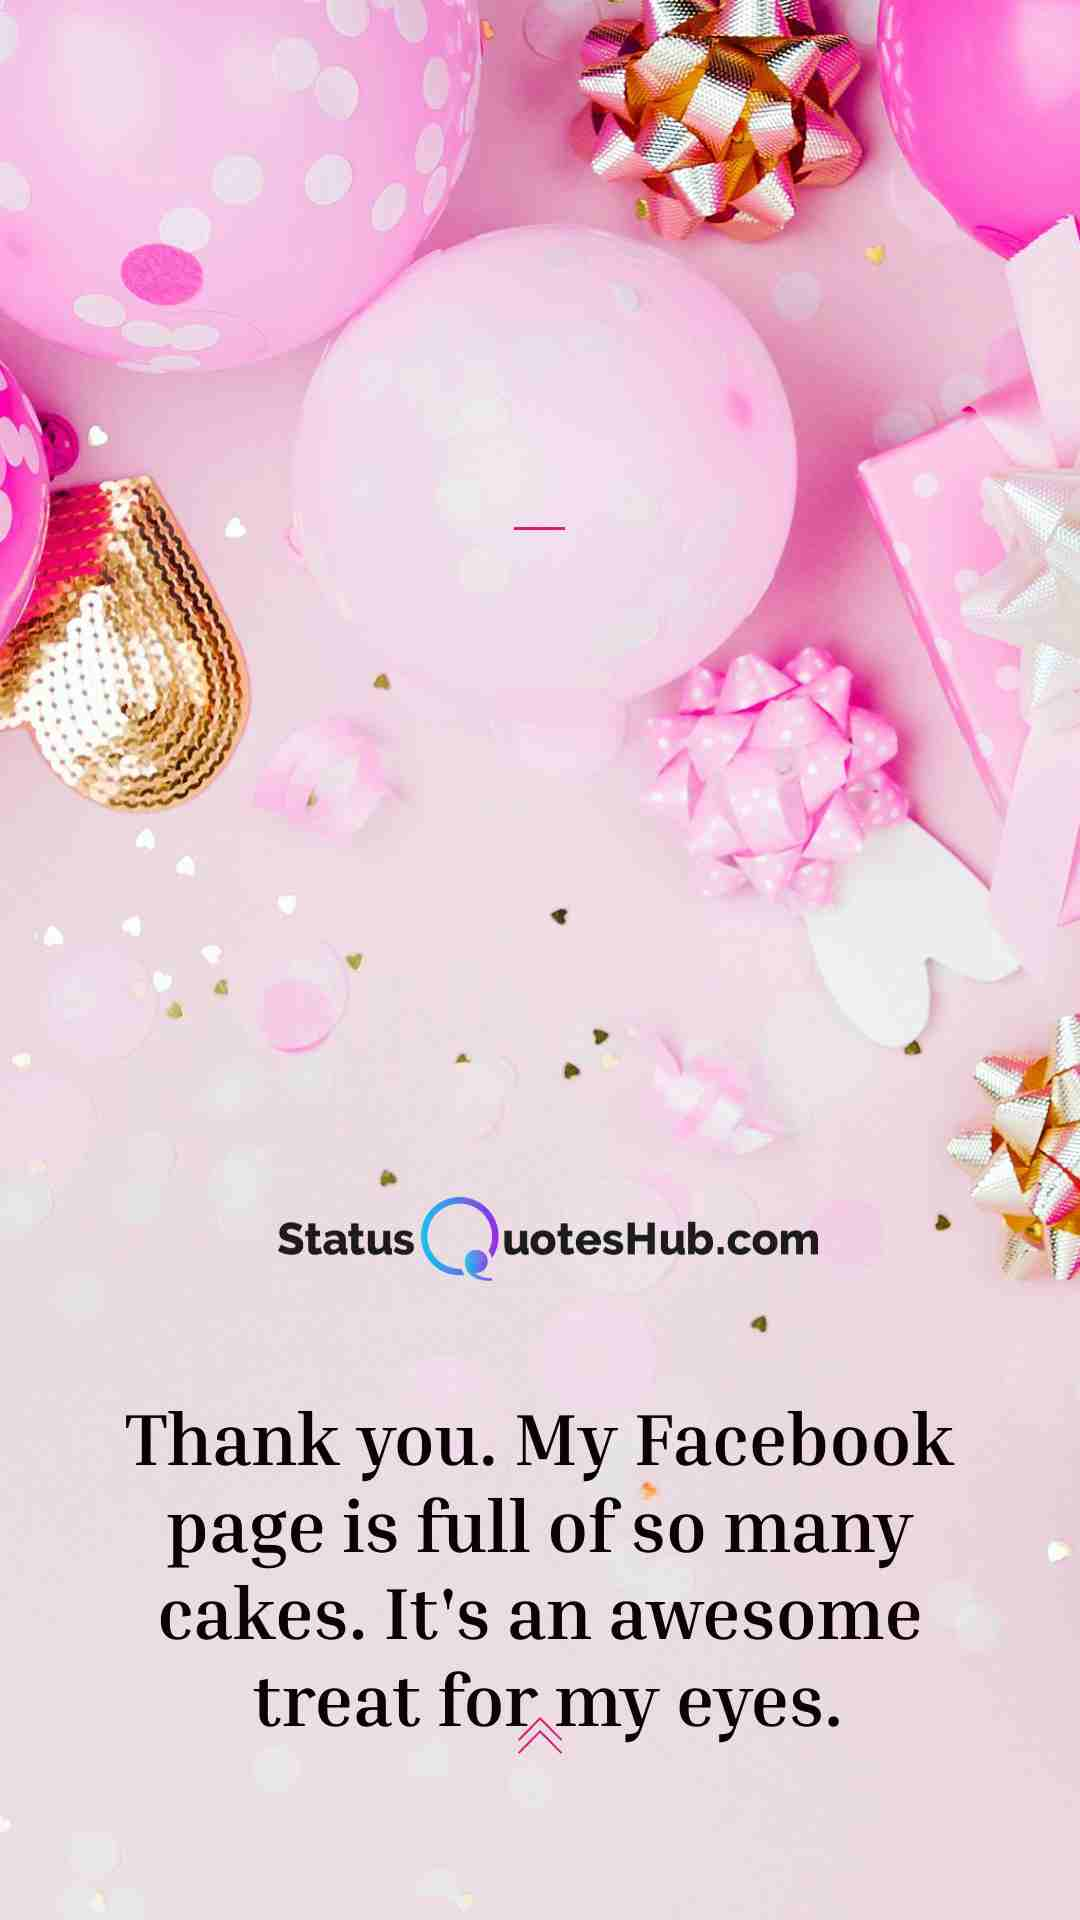 Thank you birthday wishes on Facebook